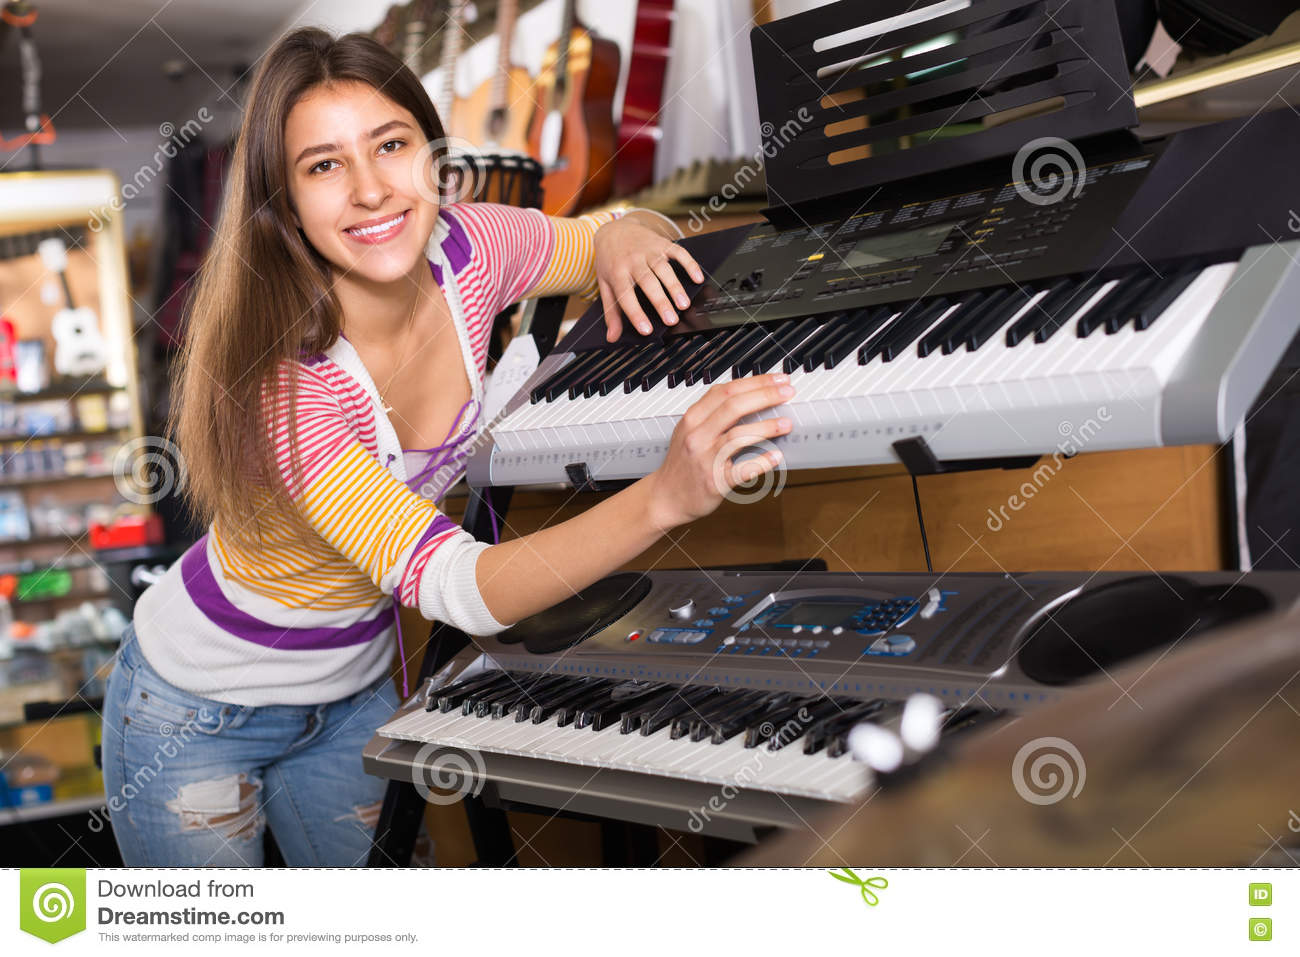 Girl Choosing Synthesizer In Store Stock Photo - Image of